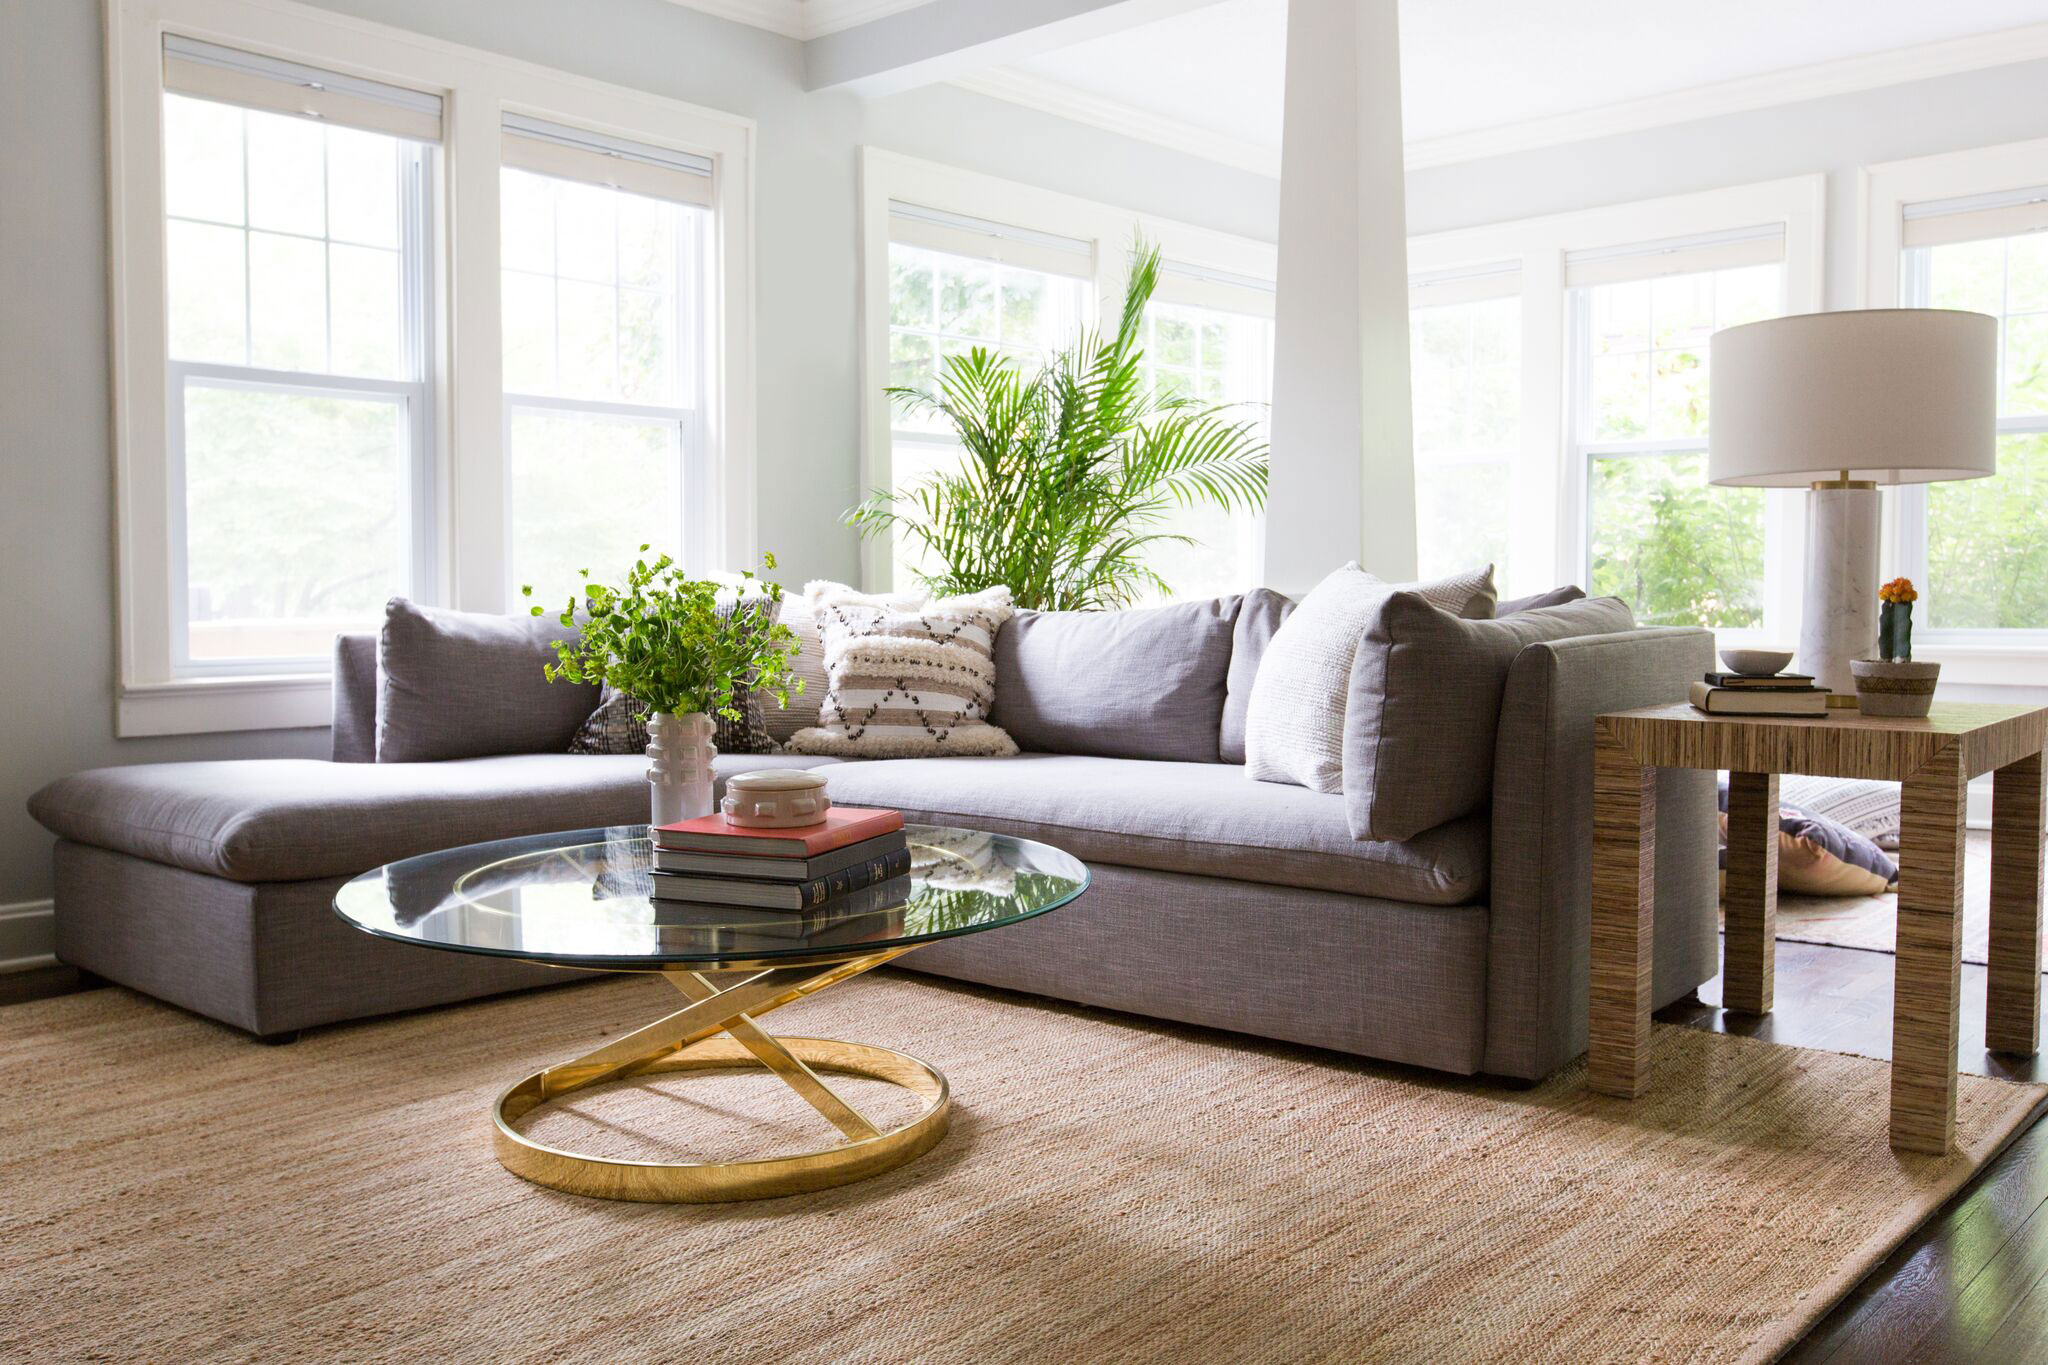 Brookside Living | Amanda Steiner Design and Coveted Home | Blue Gray Sectional and Vintage Coffee Table